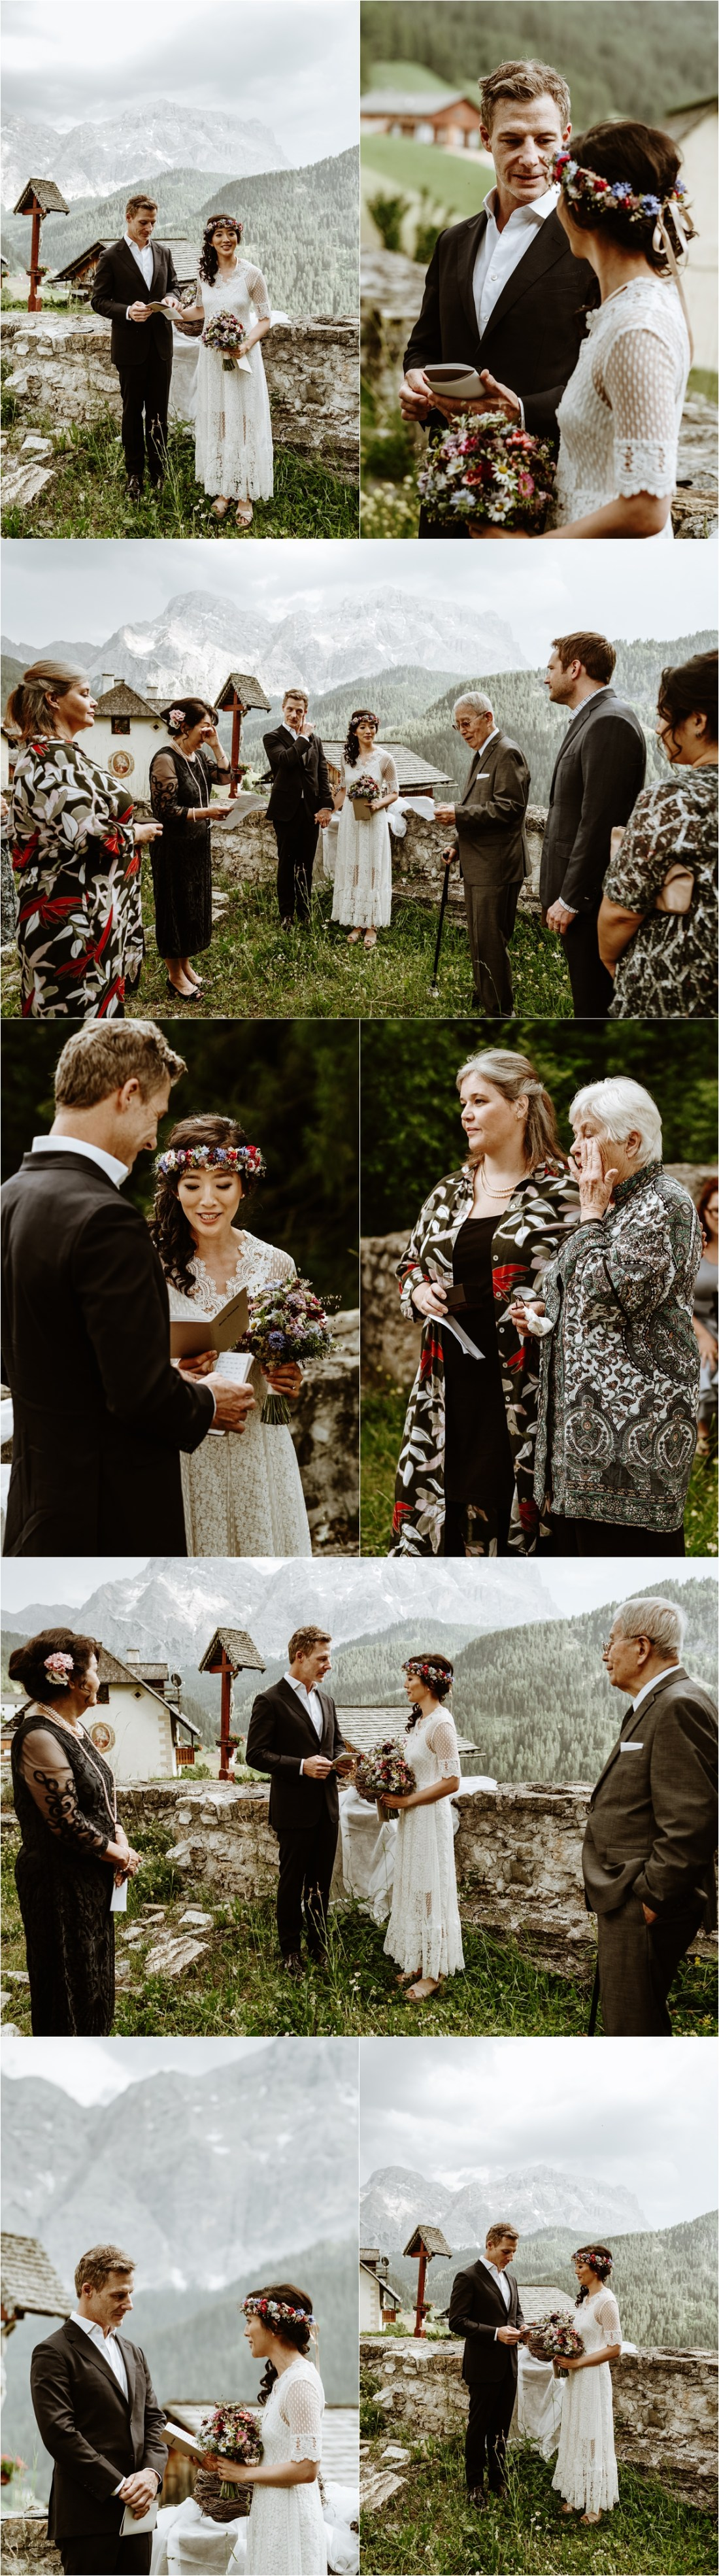 The families of the couples read poems for their intimate wedding ceremony in the Dolomites. Photo by Wild Connections Photography